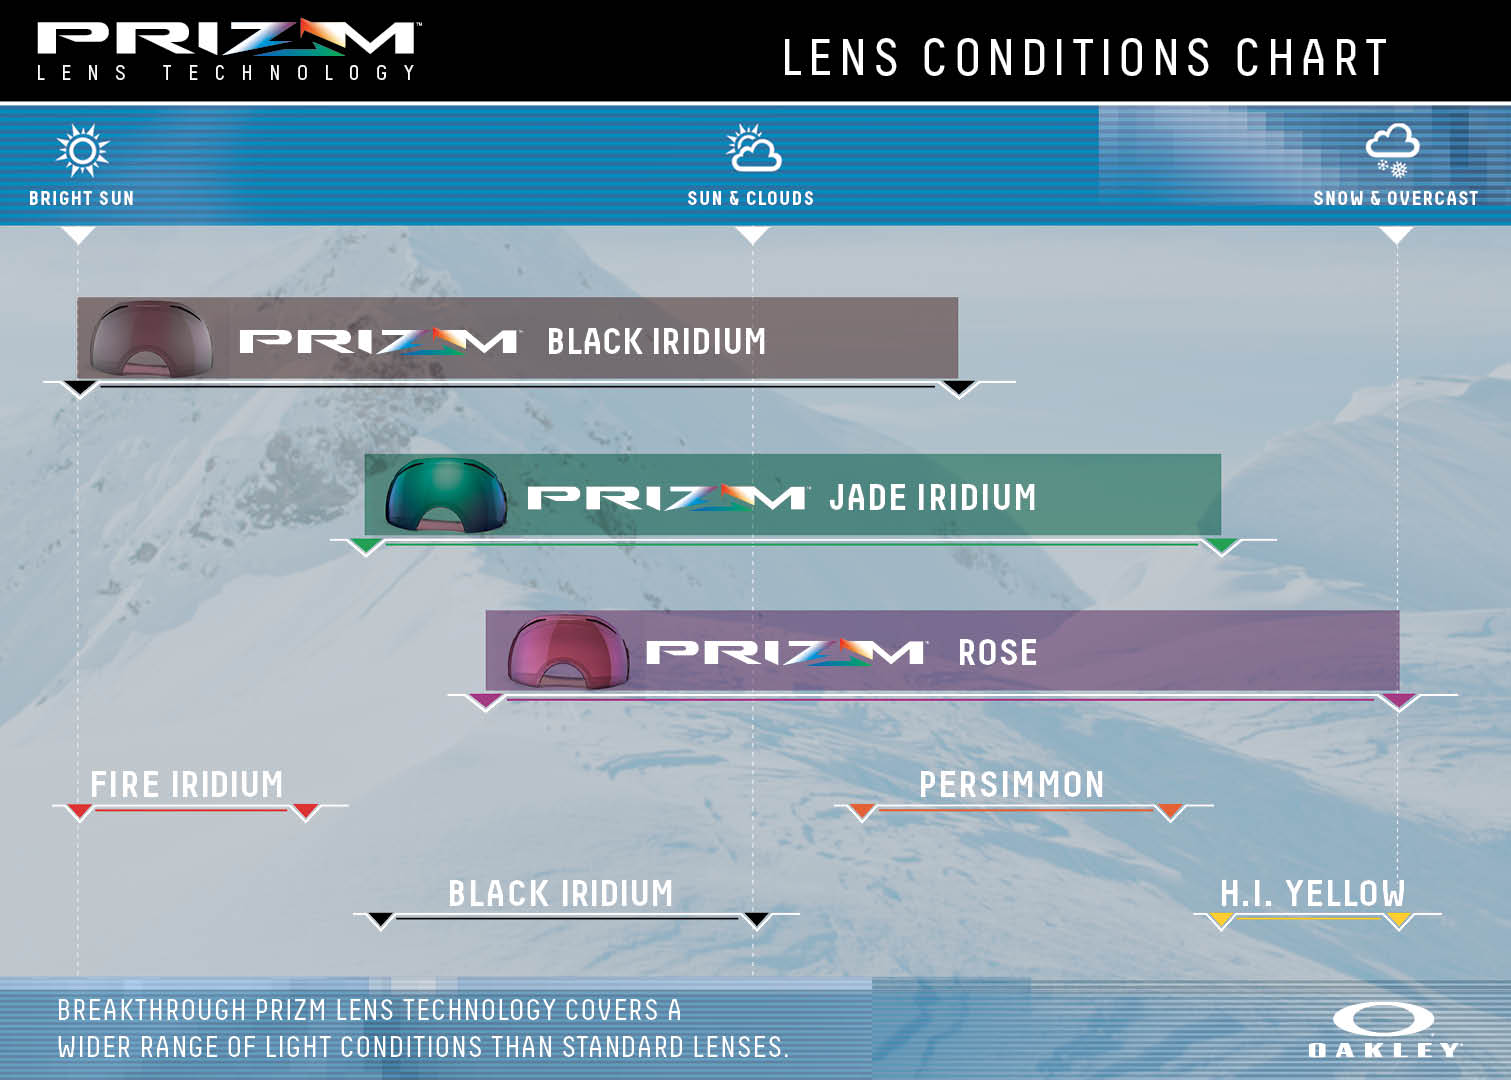 oakley snow goggles prizm  Oakley Flight Deck Matte Black with Prizm Jade Iridium Lens 拢170.00